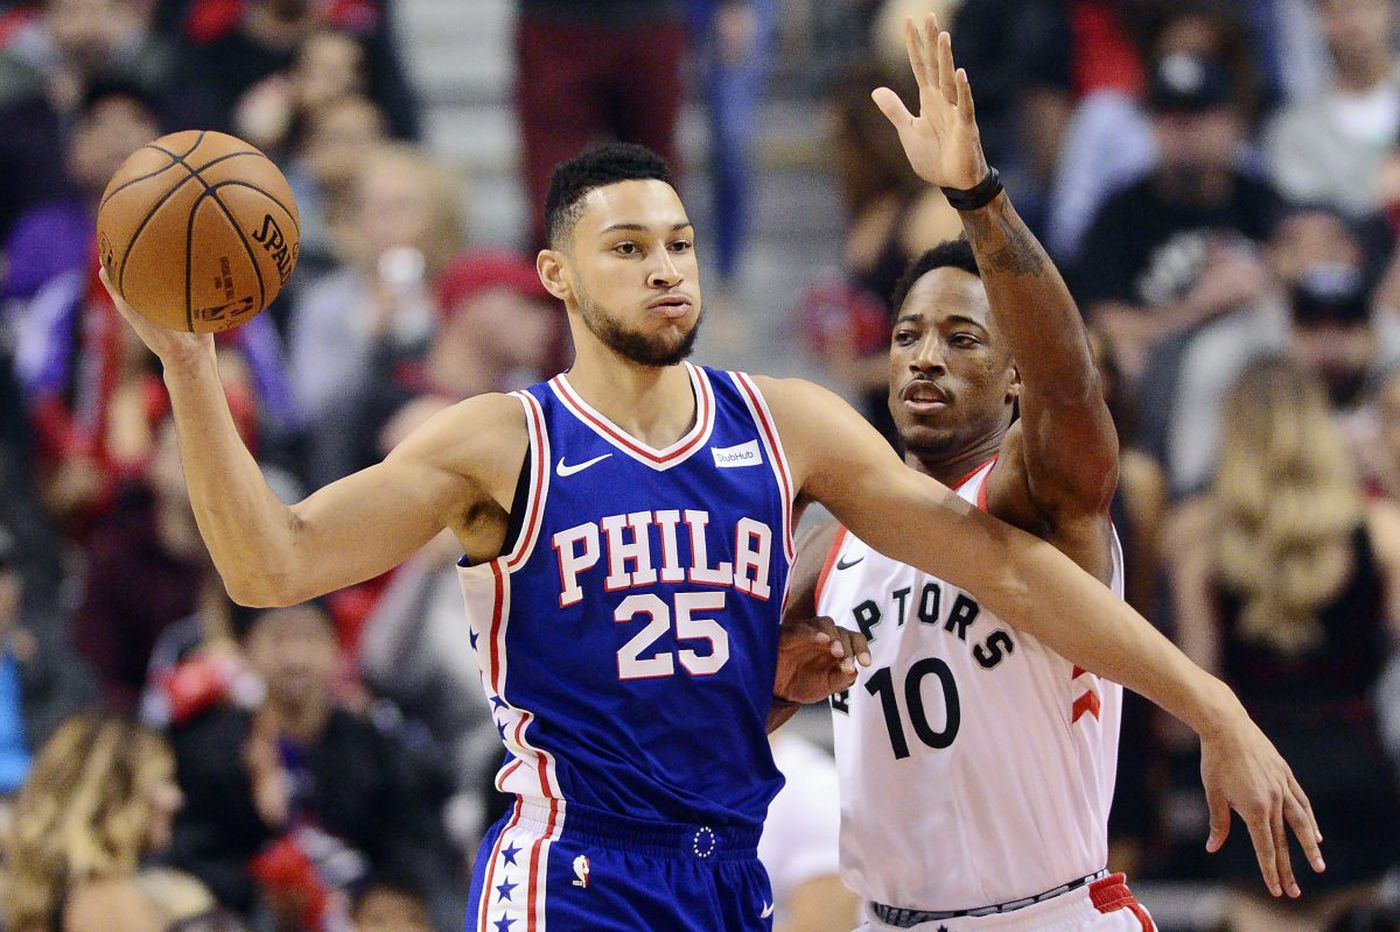 Sixers-Raptors final score: Five quick thoughts on Philly's 128-94 loss